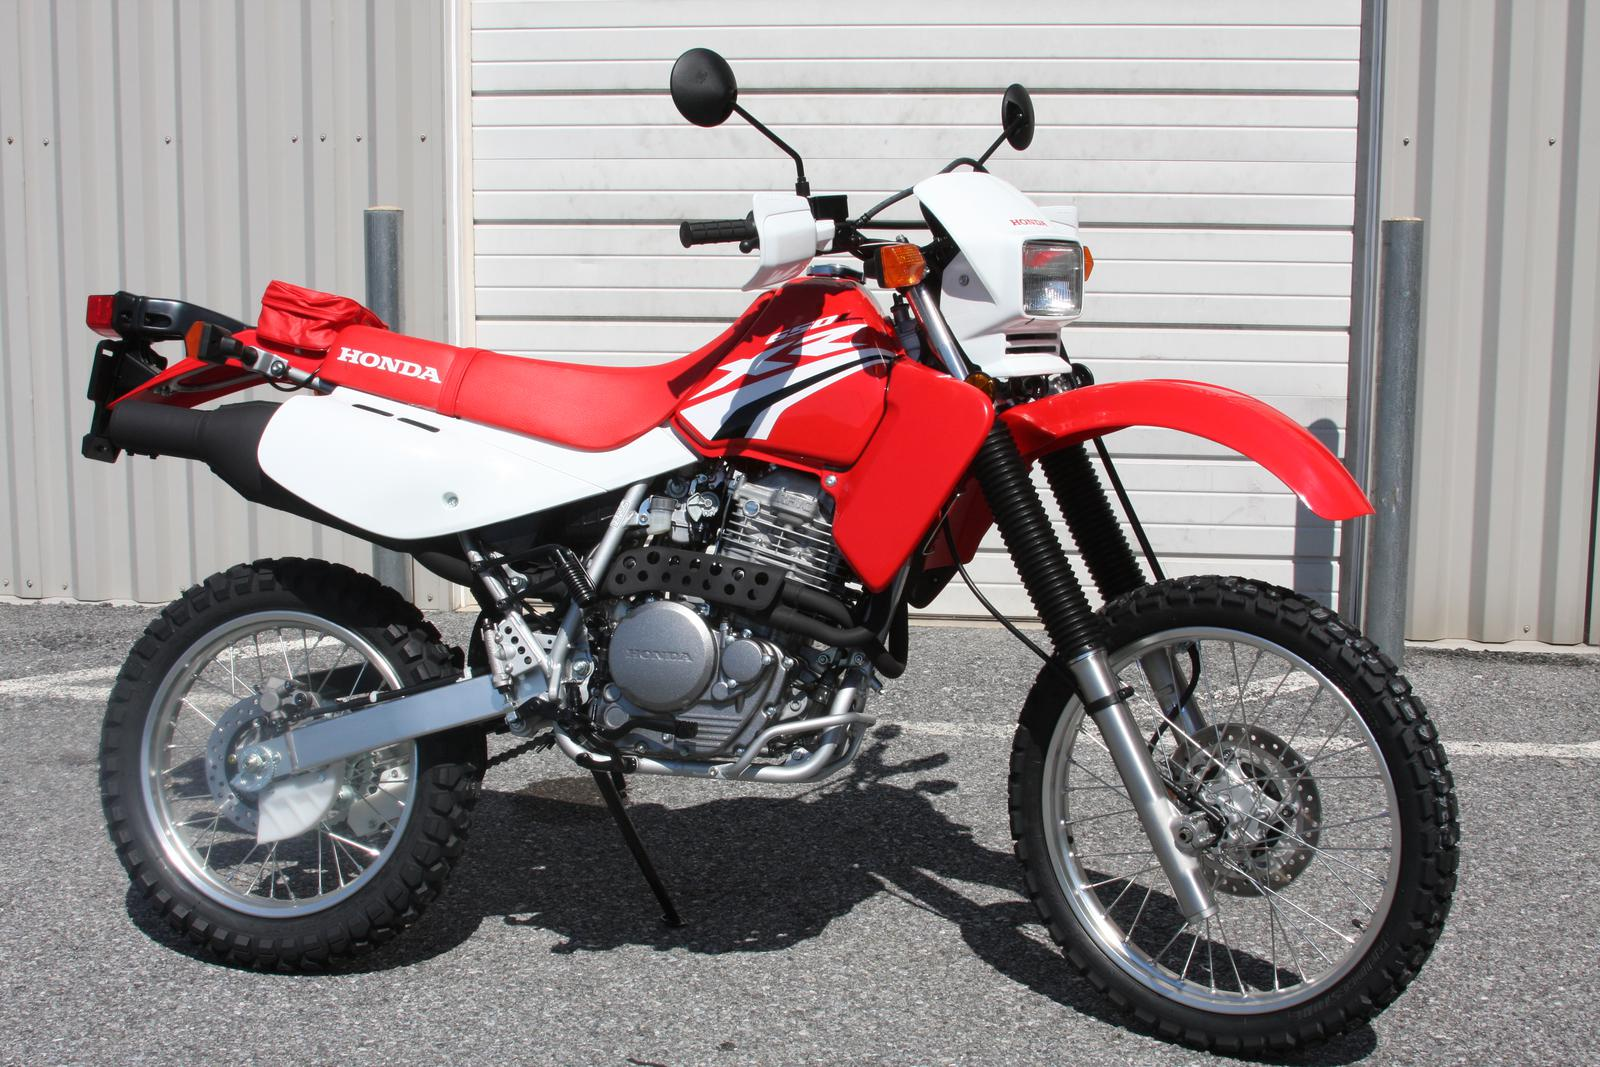 2018 Honda Xr650l For Sale In York Pa Ams Action Motorsports York